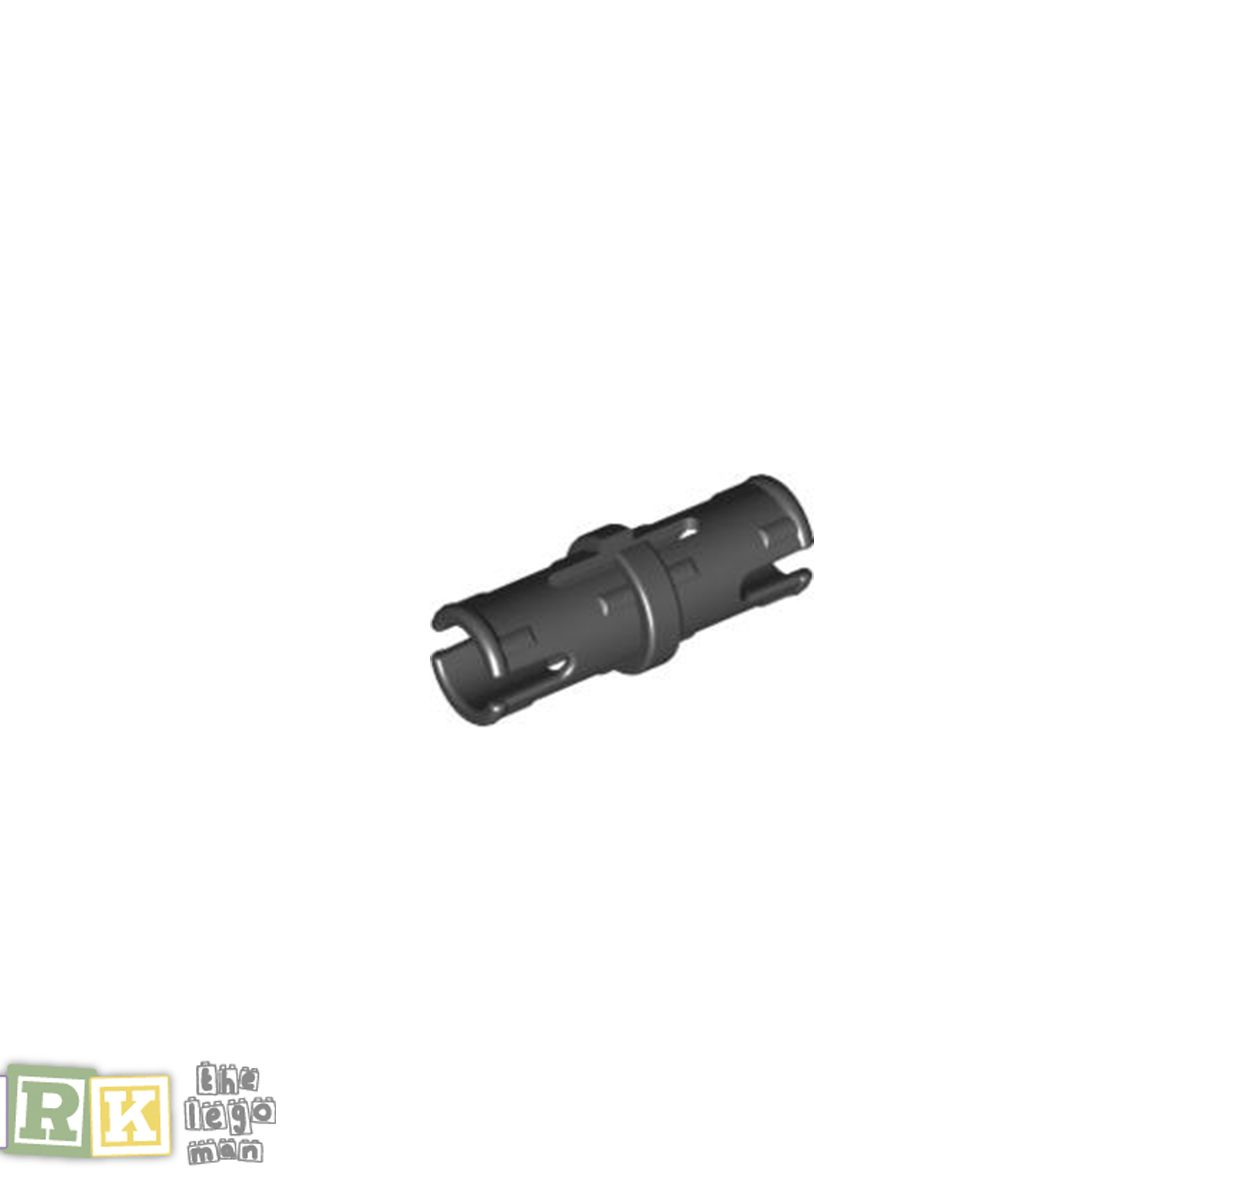 NEW Lego 2780 Black Connector Peg With Friction 4121715